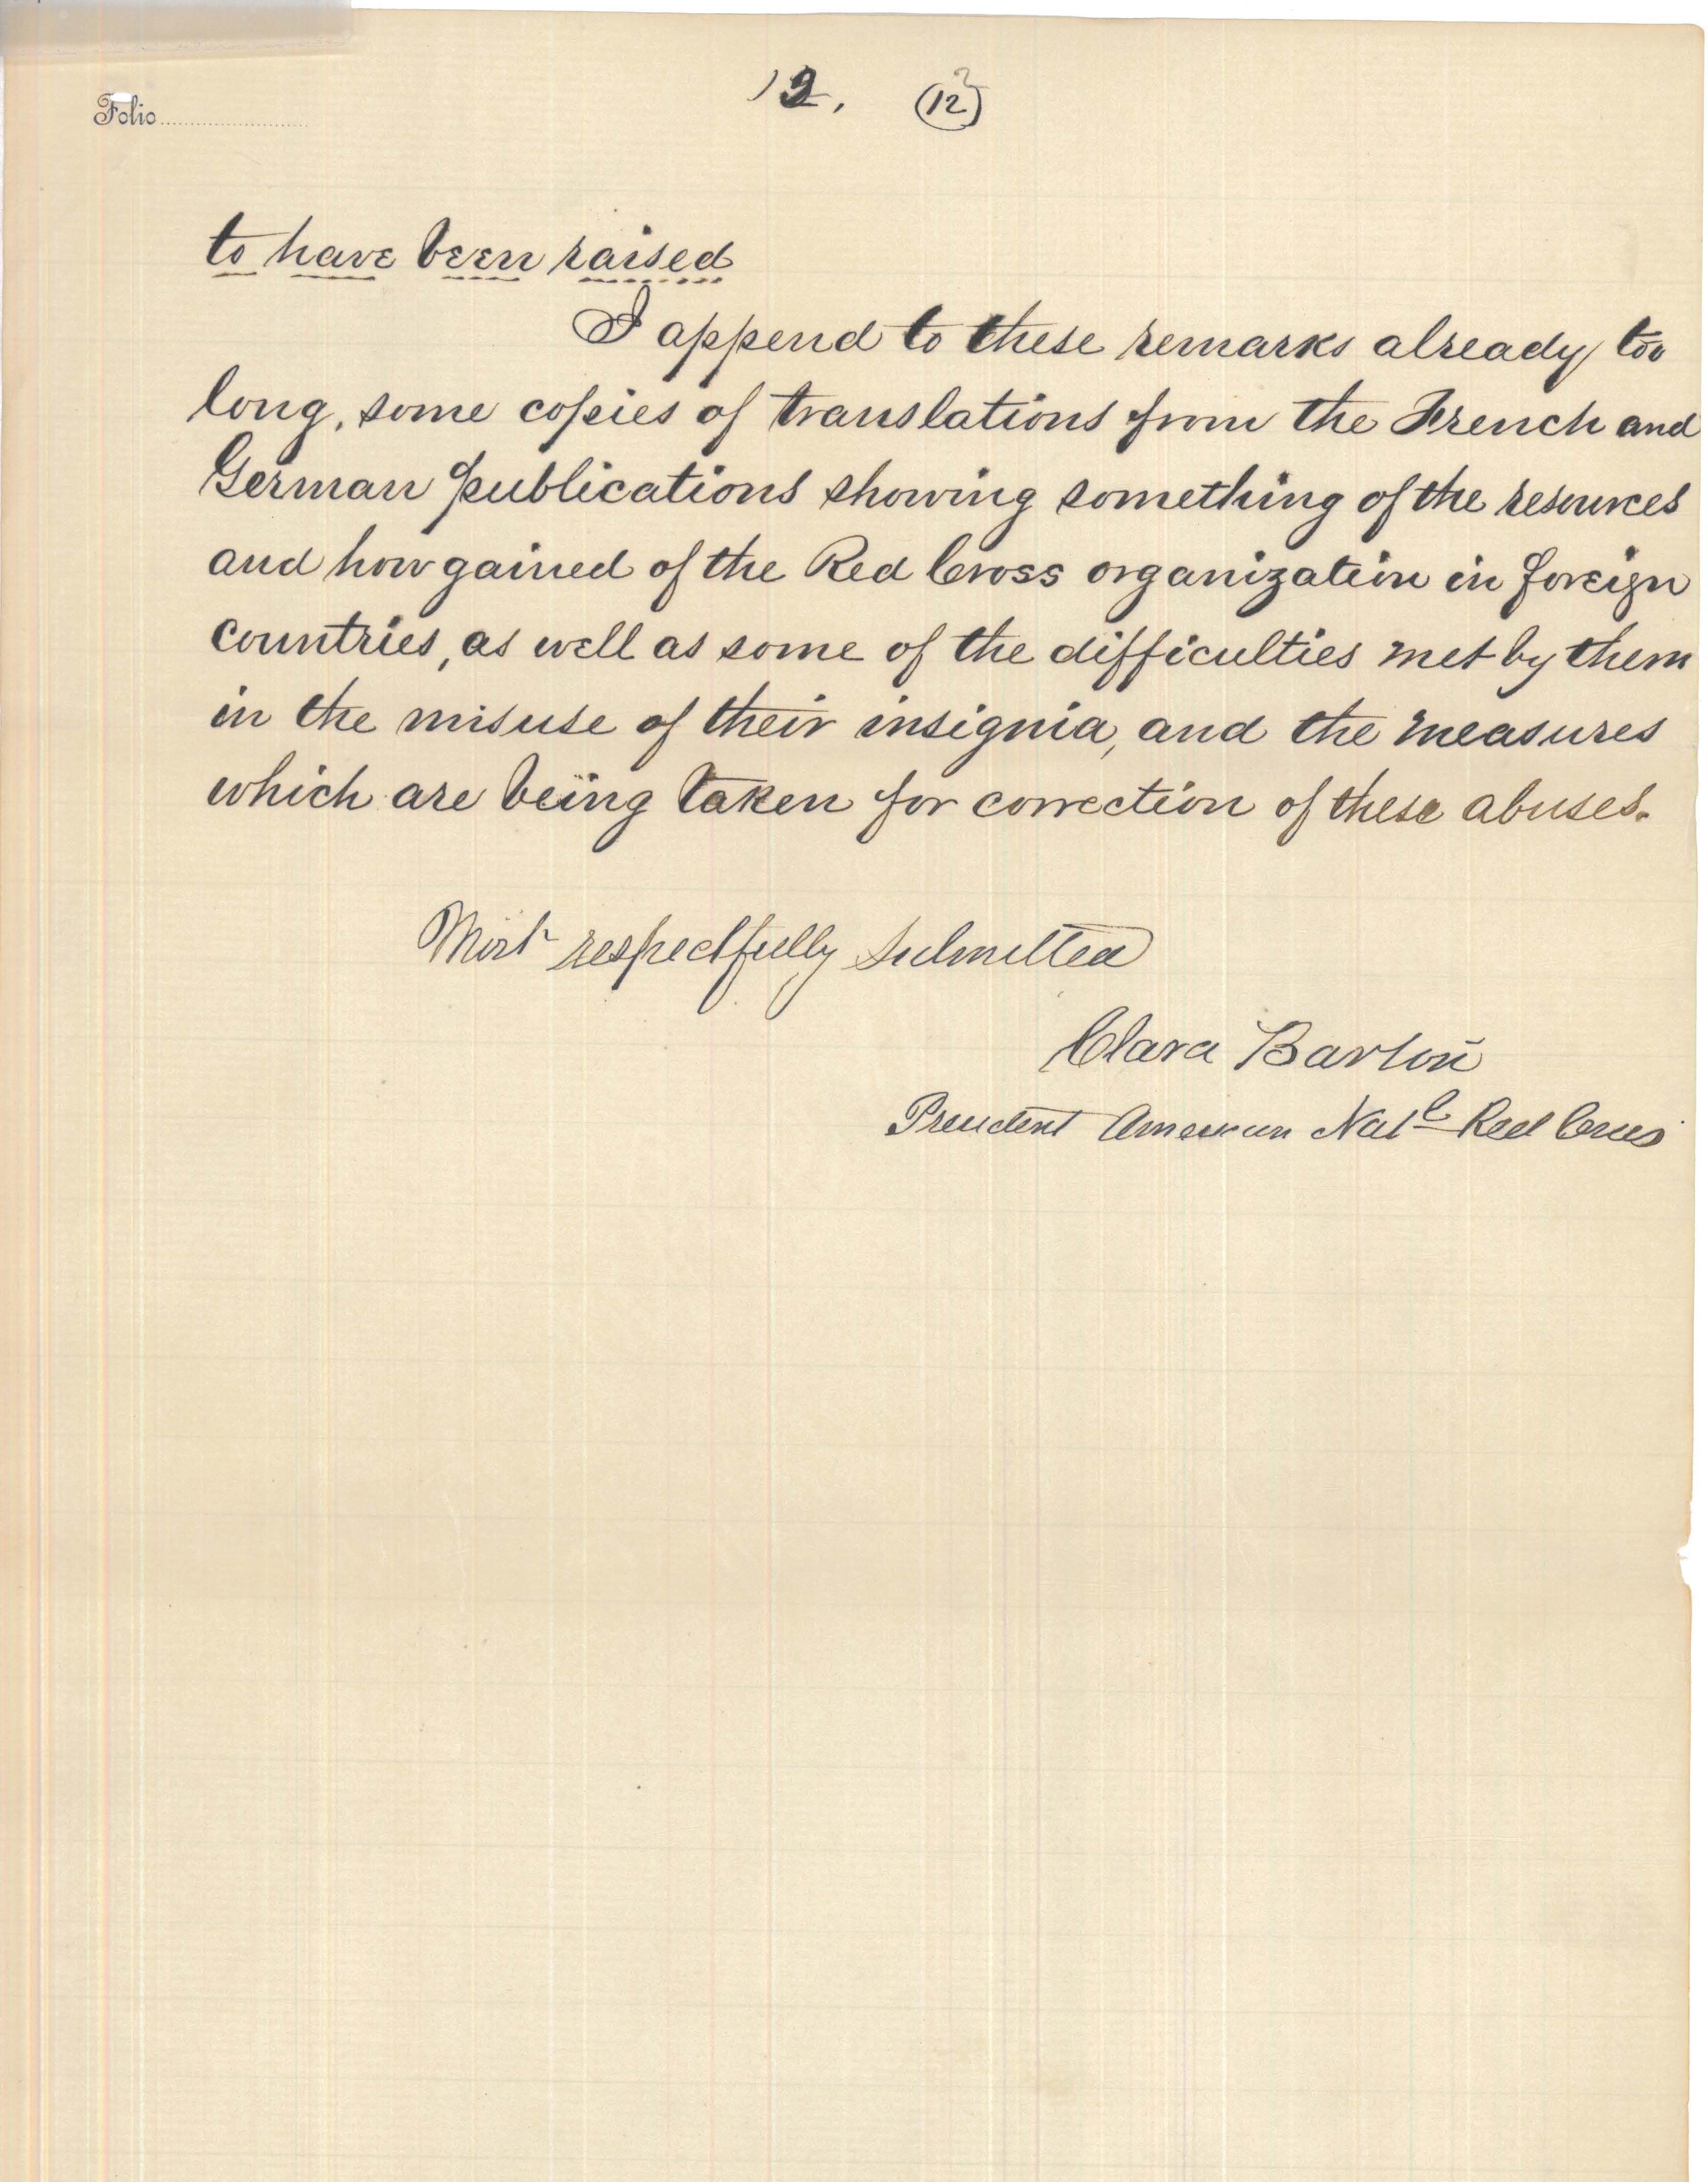 Petition to the Senate Regarding the Incorporation of the Red Cross from Clara Barton, last page. (National Archives Identifier 7542783)